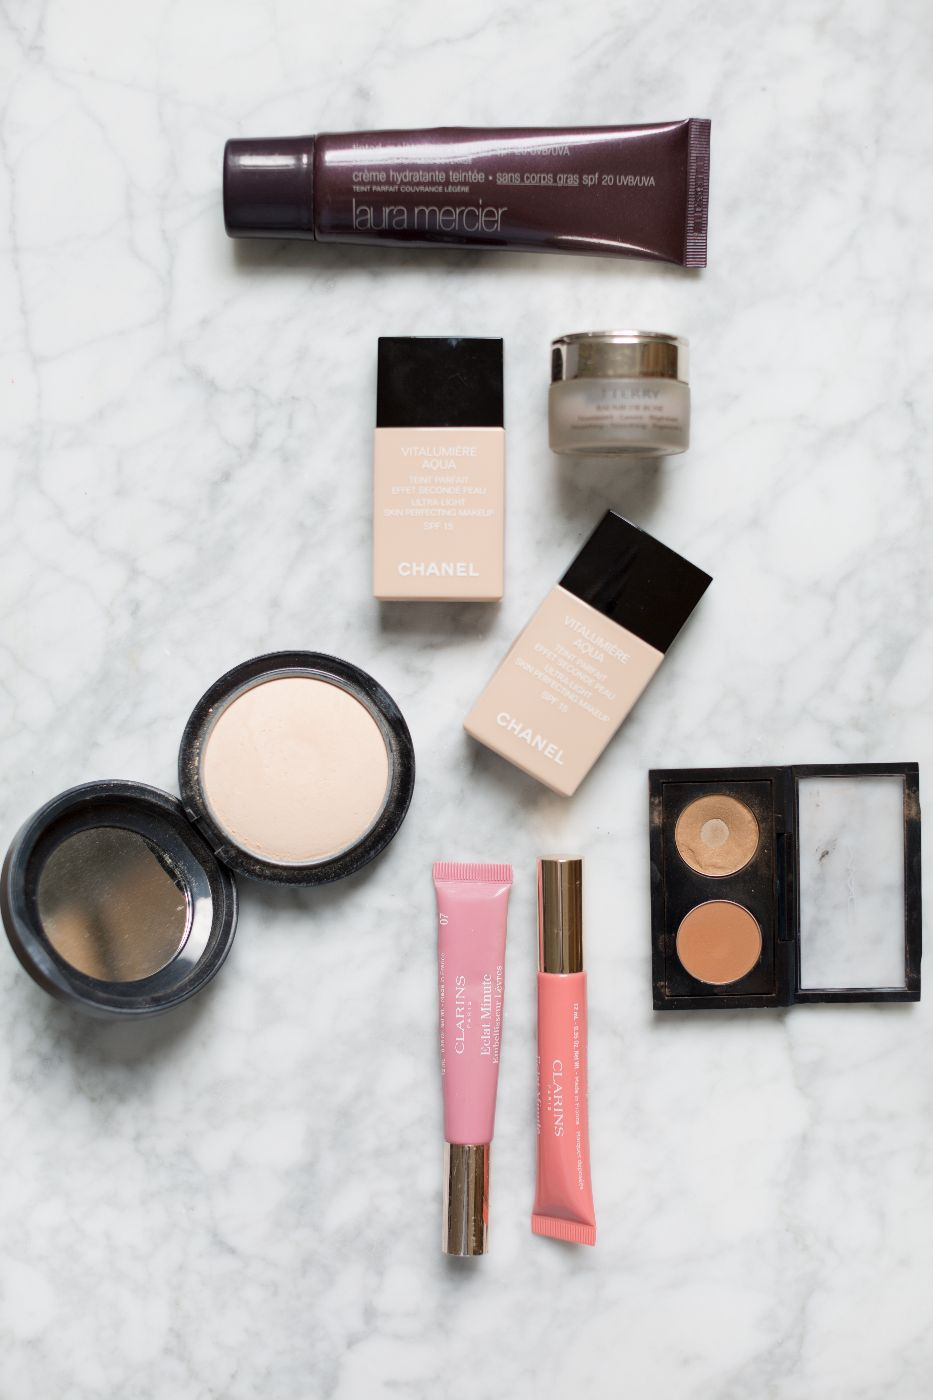 theannaedit-all-time-favourite-beauty-products-2010-2011-until-2017-laura-mercier-mac-cosmetics-clarins-og-makeup-products-august-2017-5